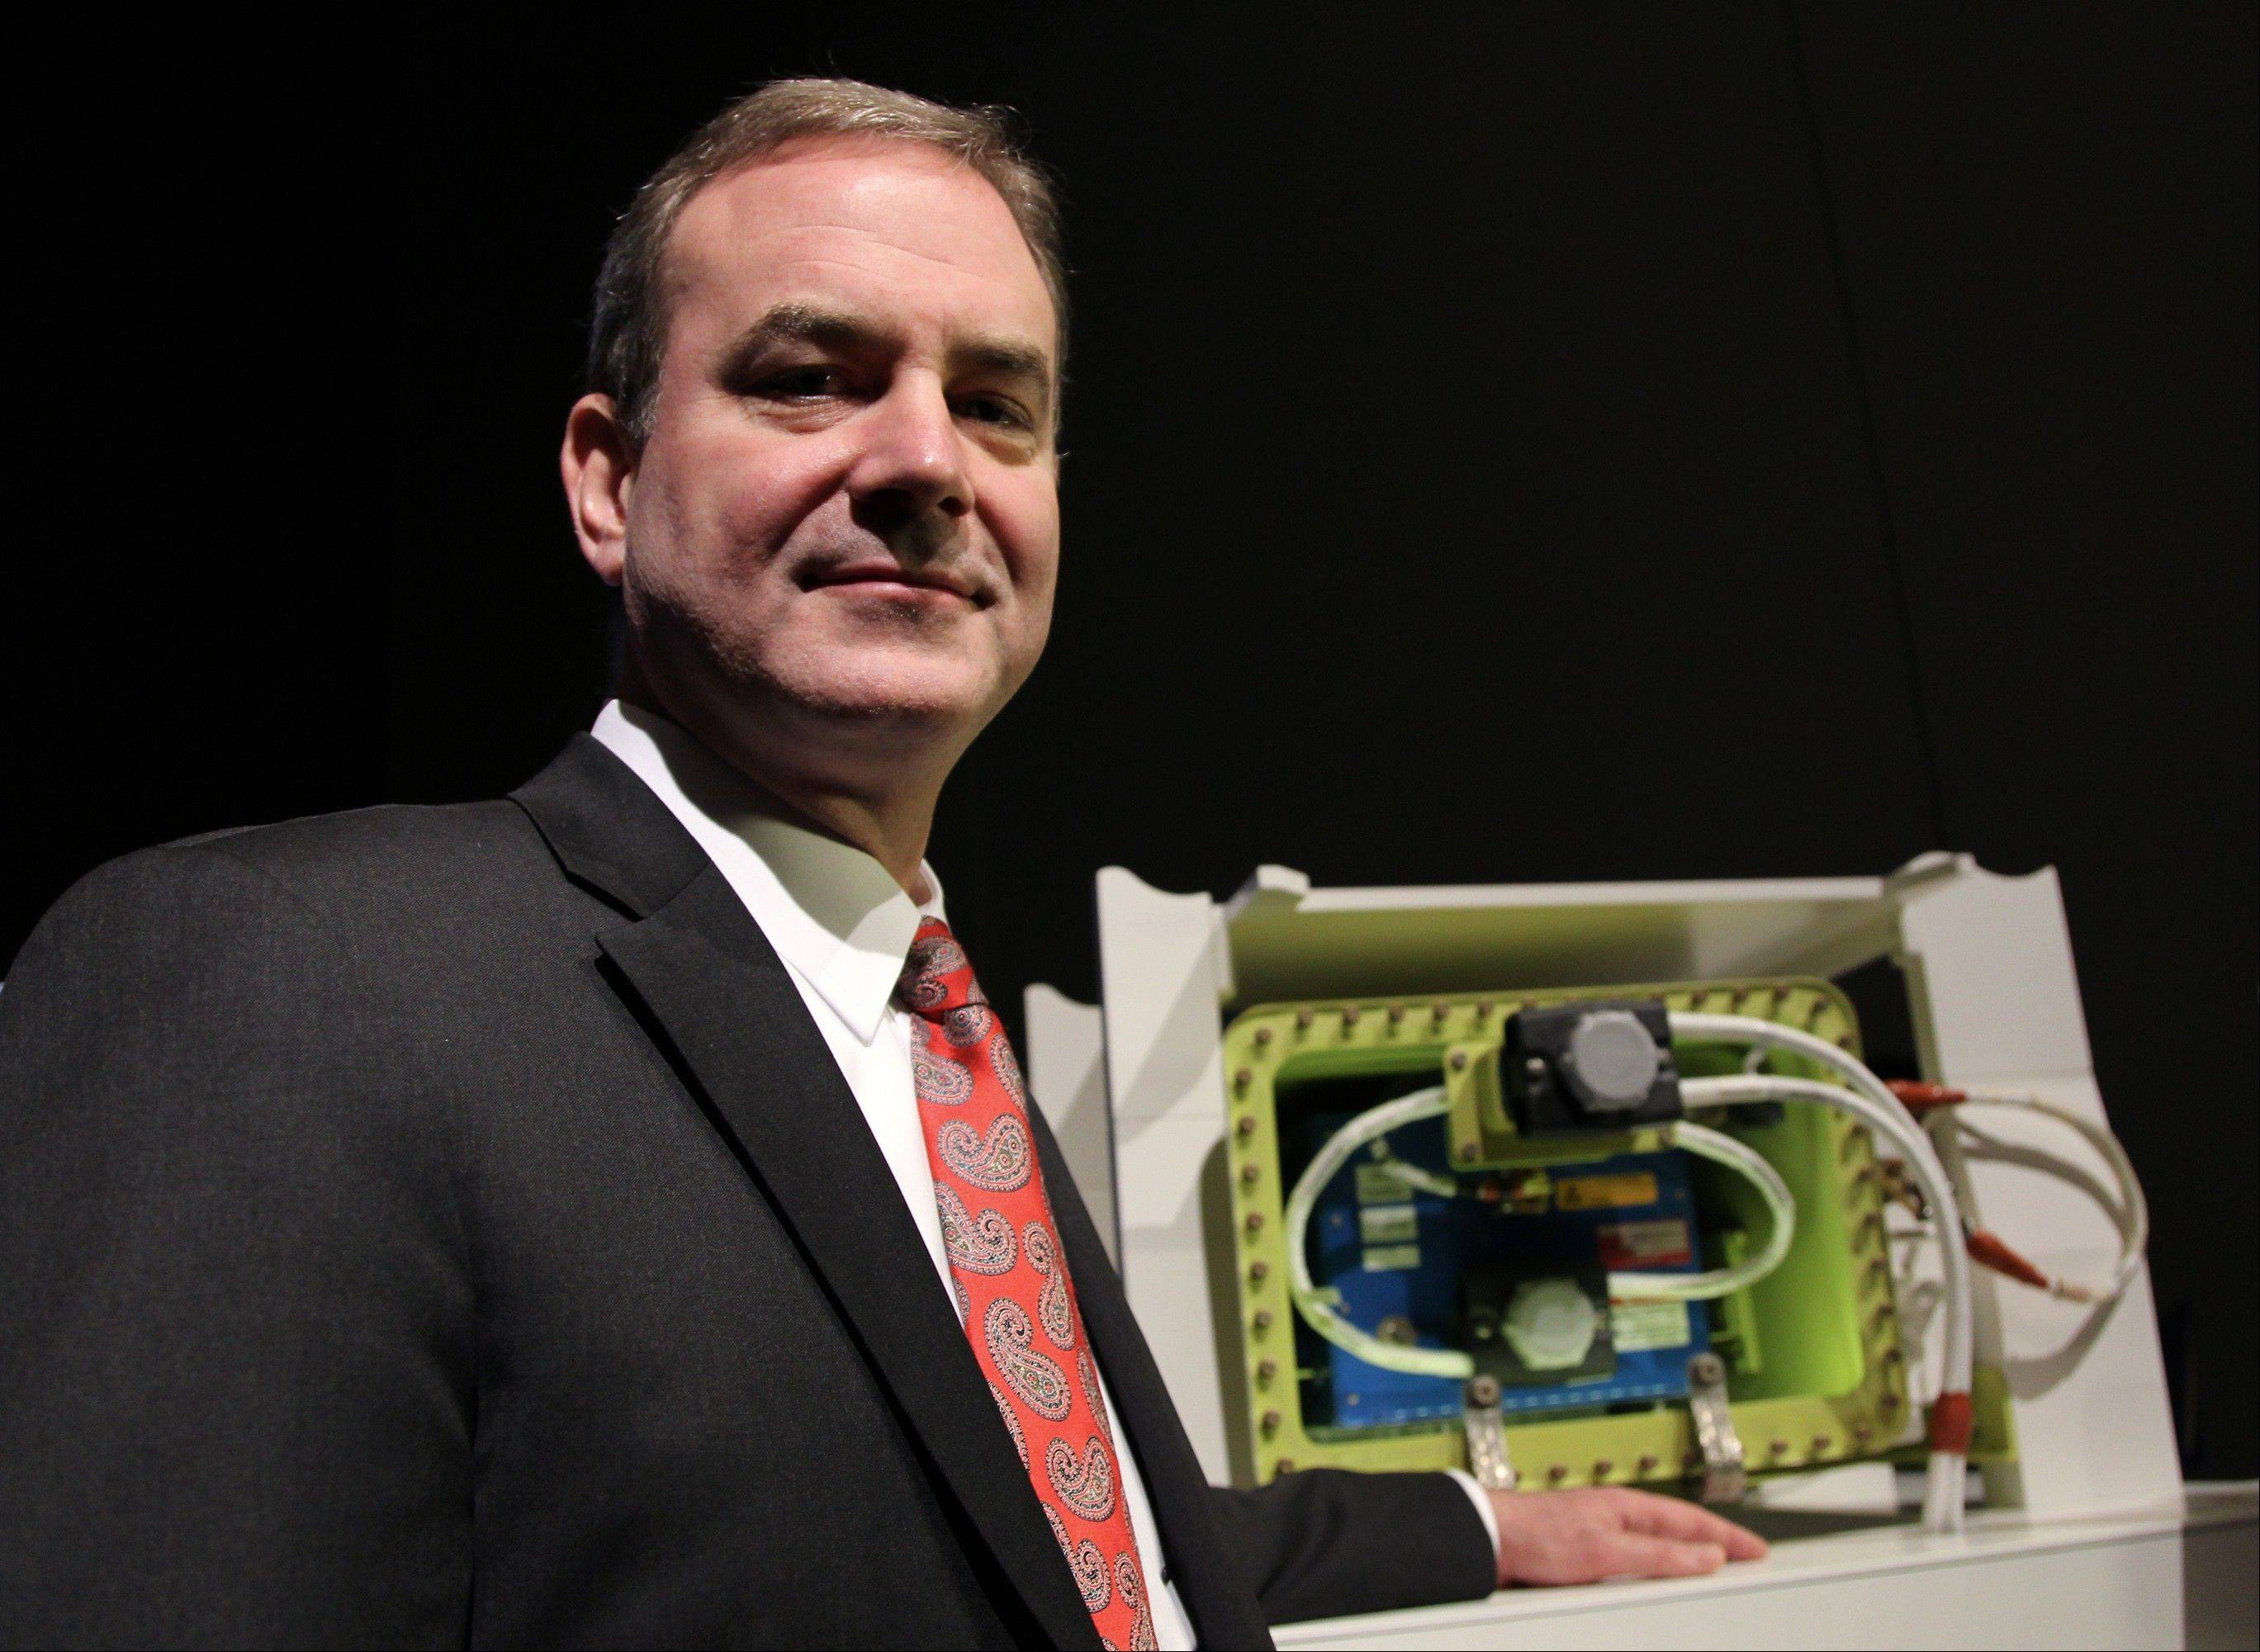 Mike Sinnett, vice president at Boeing Commercial Airplanes and chief project engineer of the 787 program, poses for a photograph with a model of the newly redesigned battery for Boeing Co.�s 787 Dreamliner during a news conference in Tokyo, Japan, last Friday, March 15.